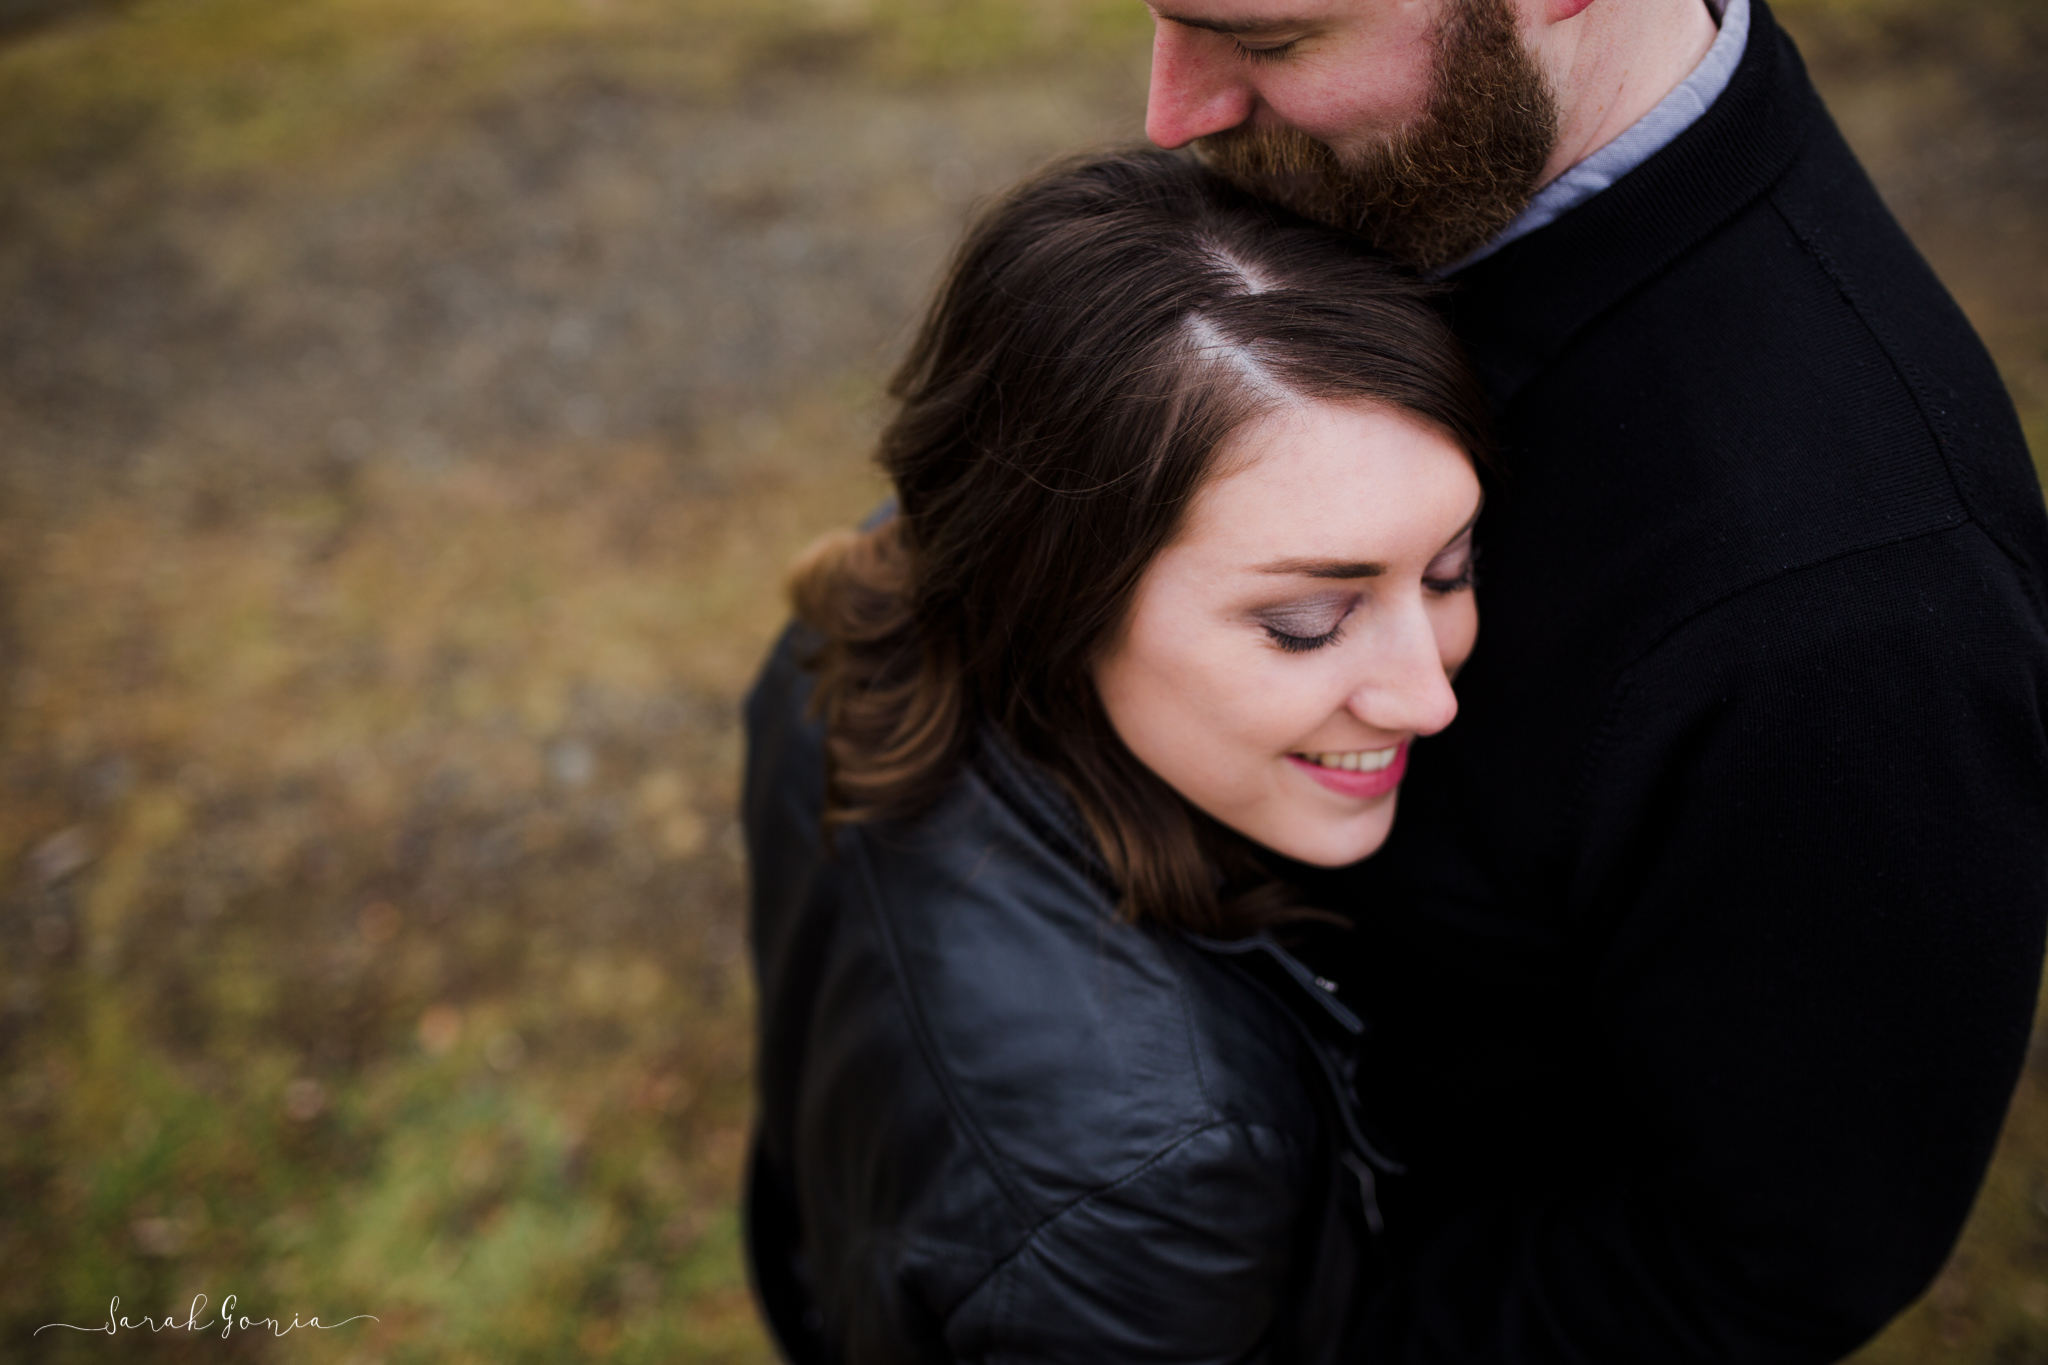 Sarah Gonia Photography Olympia Wedding Photographer Engagement